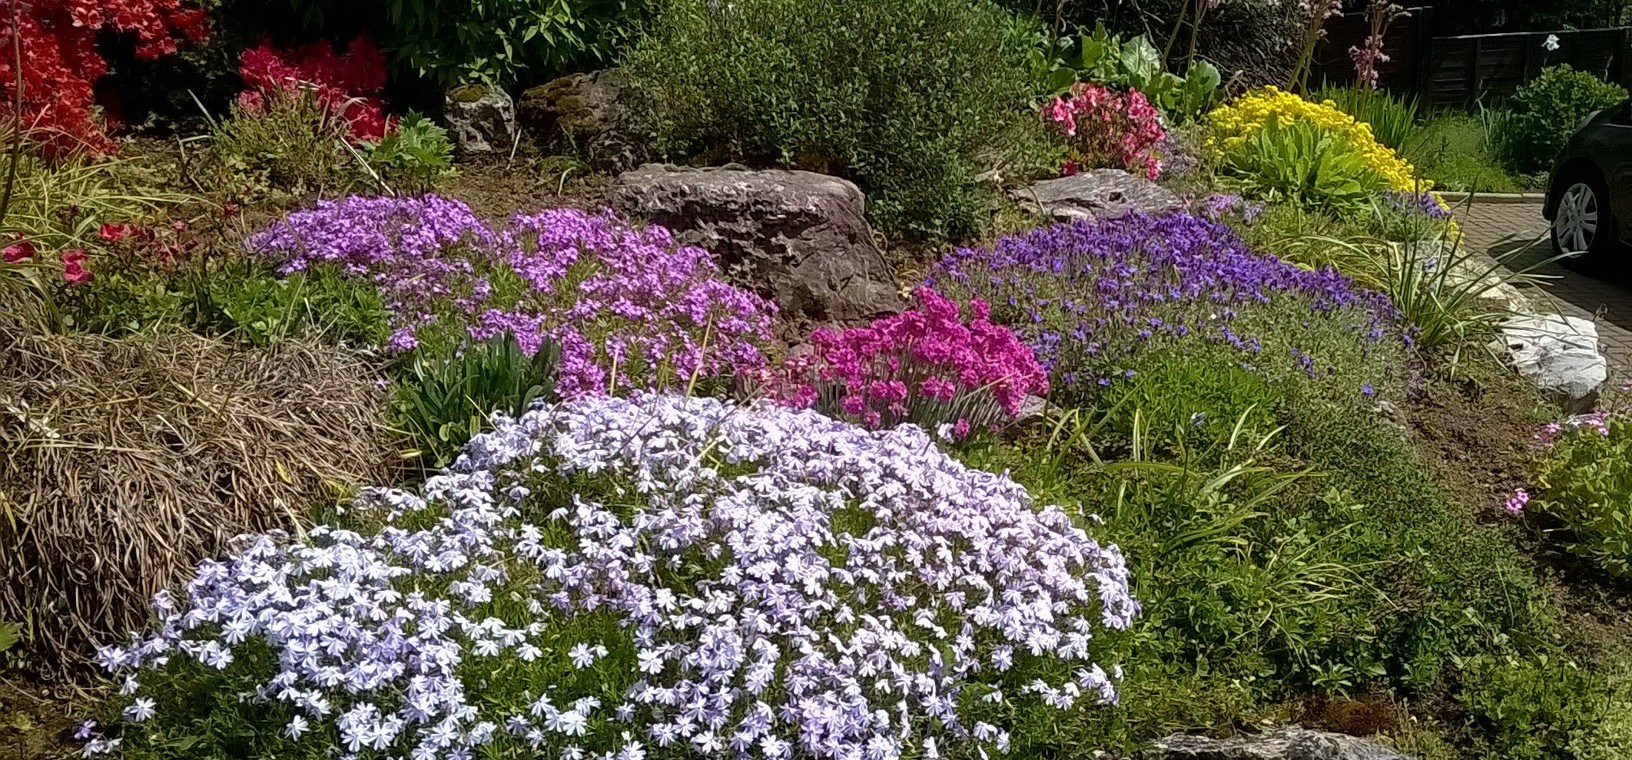 Creeping phlox and auberetia on a garden rockery